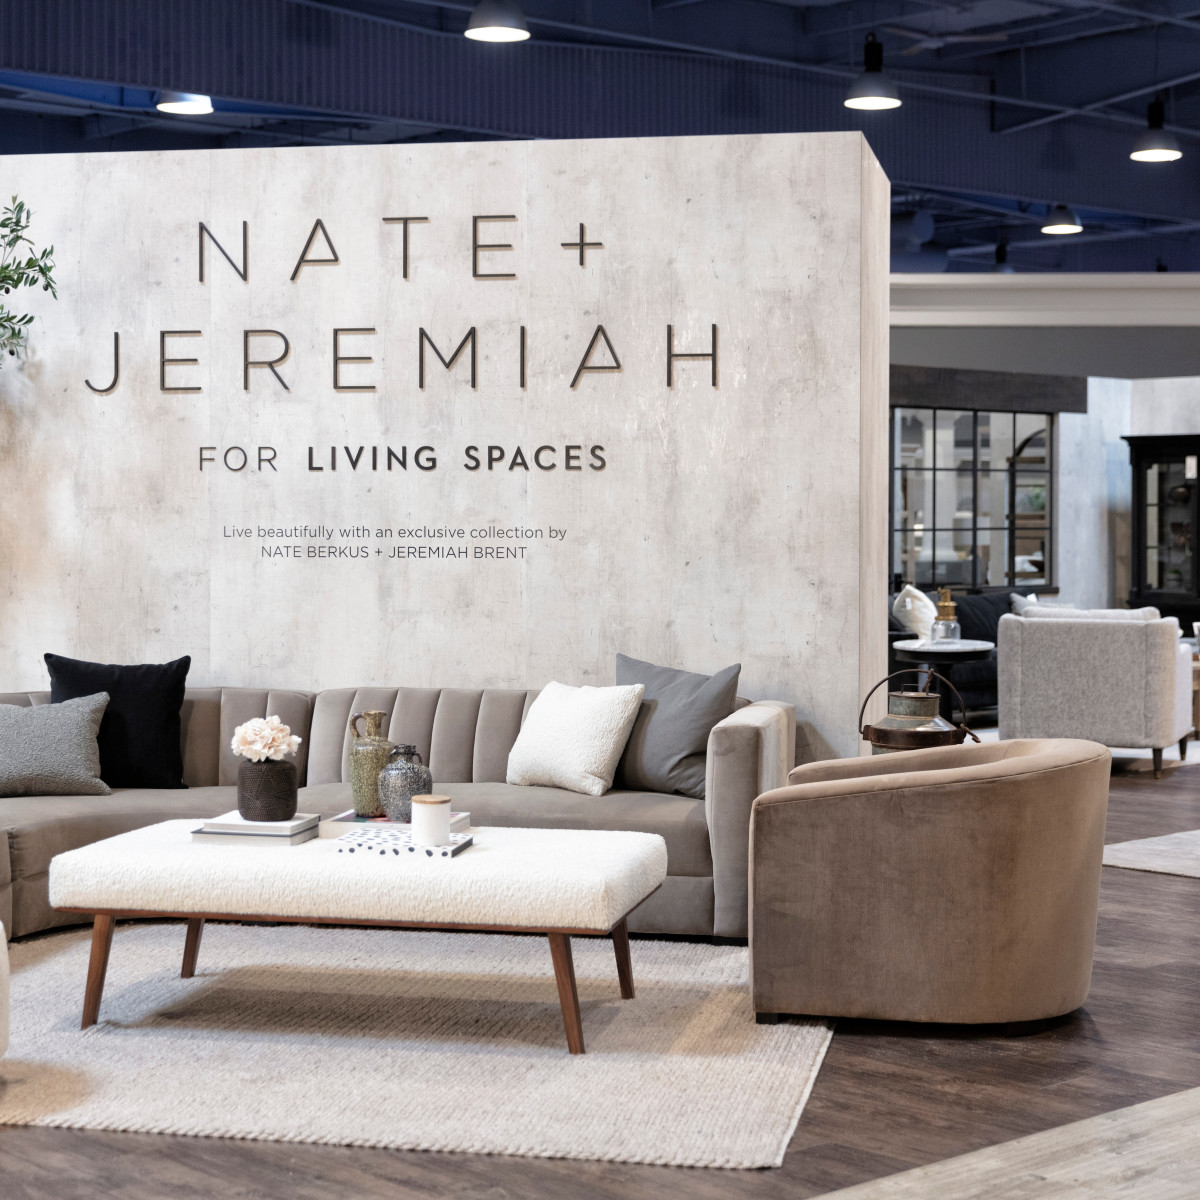 West Coast Home Store Greets Dfw With Special Treat From Joanna